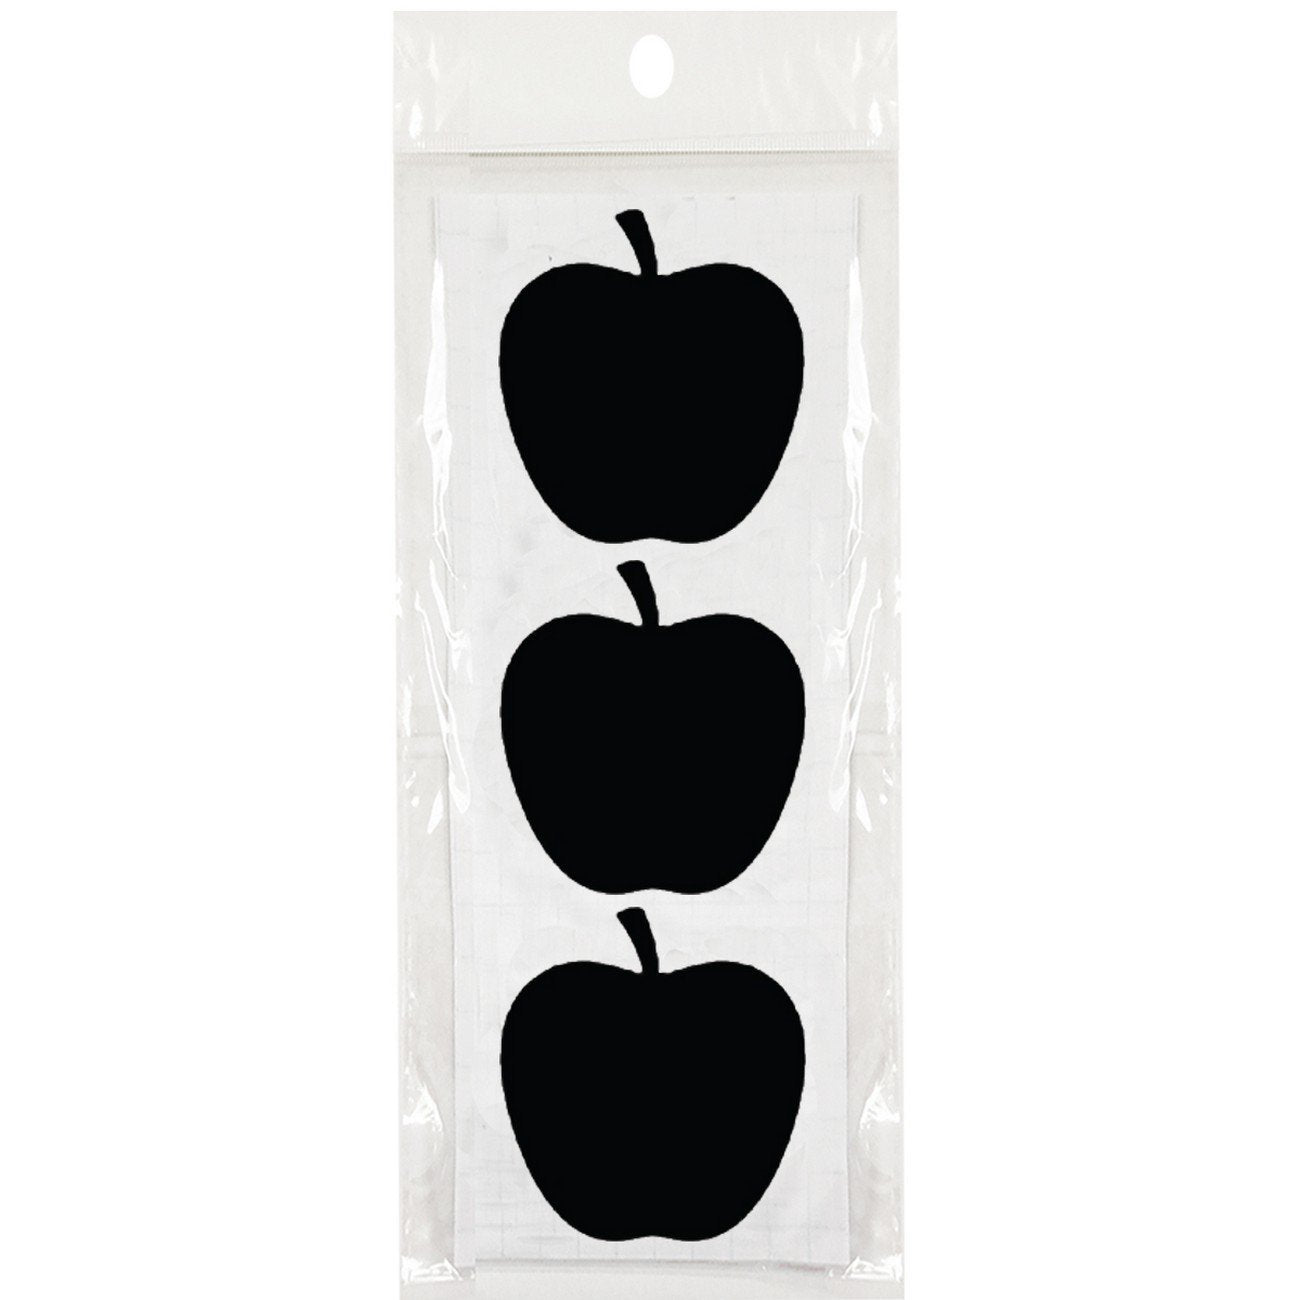 "Wrapables Set of 30 Chalkboard Labels / Chalkboard Stickers  - 2.6"" x 2.5"" Apple"